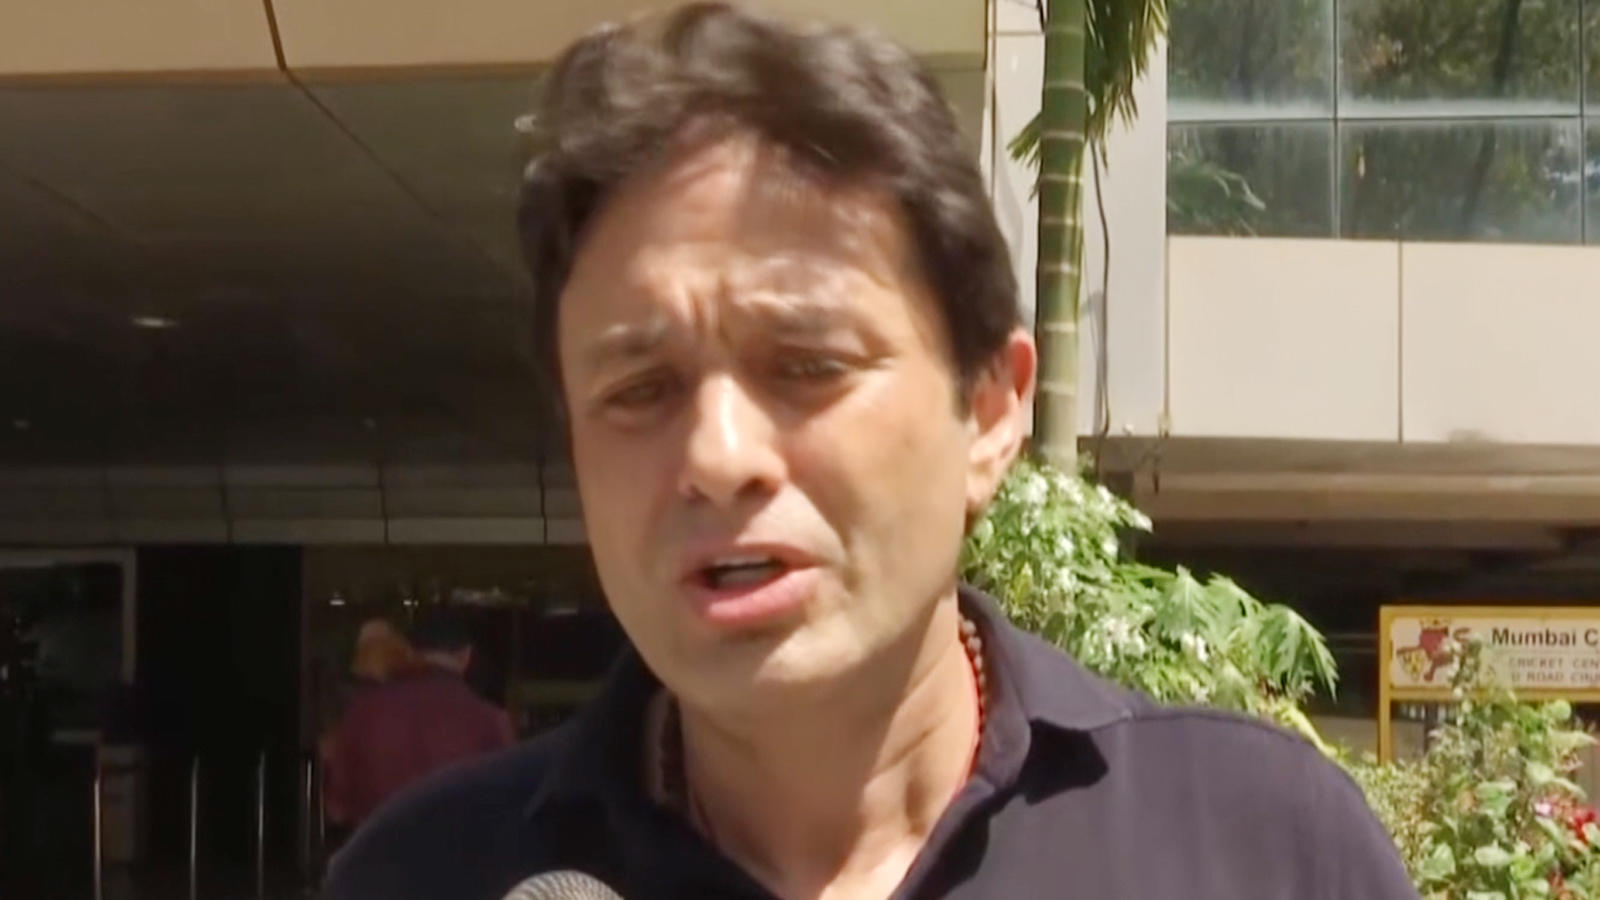 not-money-citizens-heath-comes-first-ness-wadia-after-bcci-ipl-franchises-meet